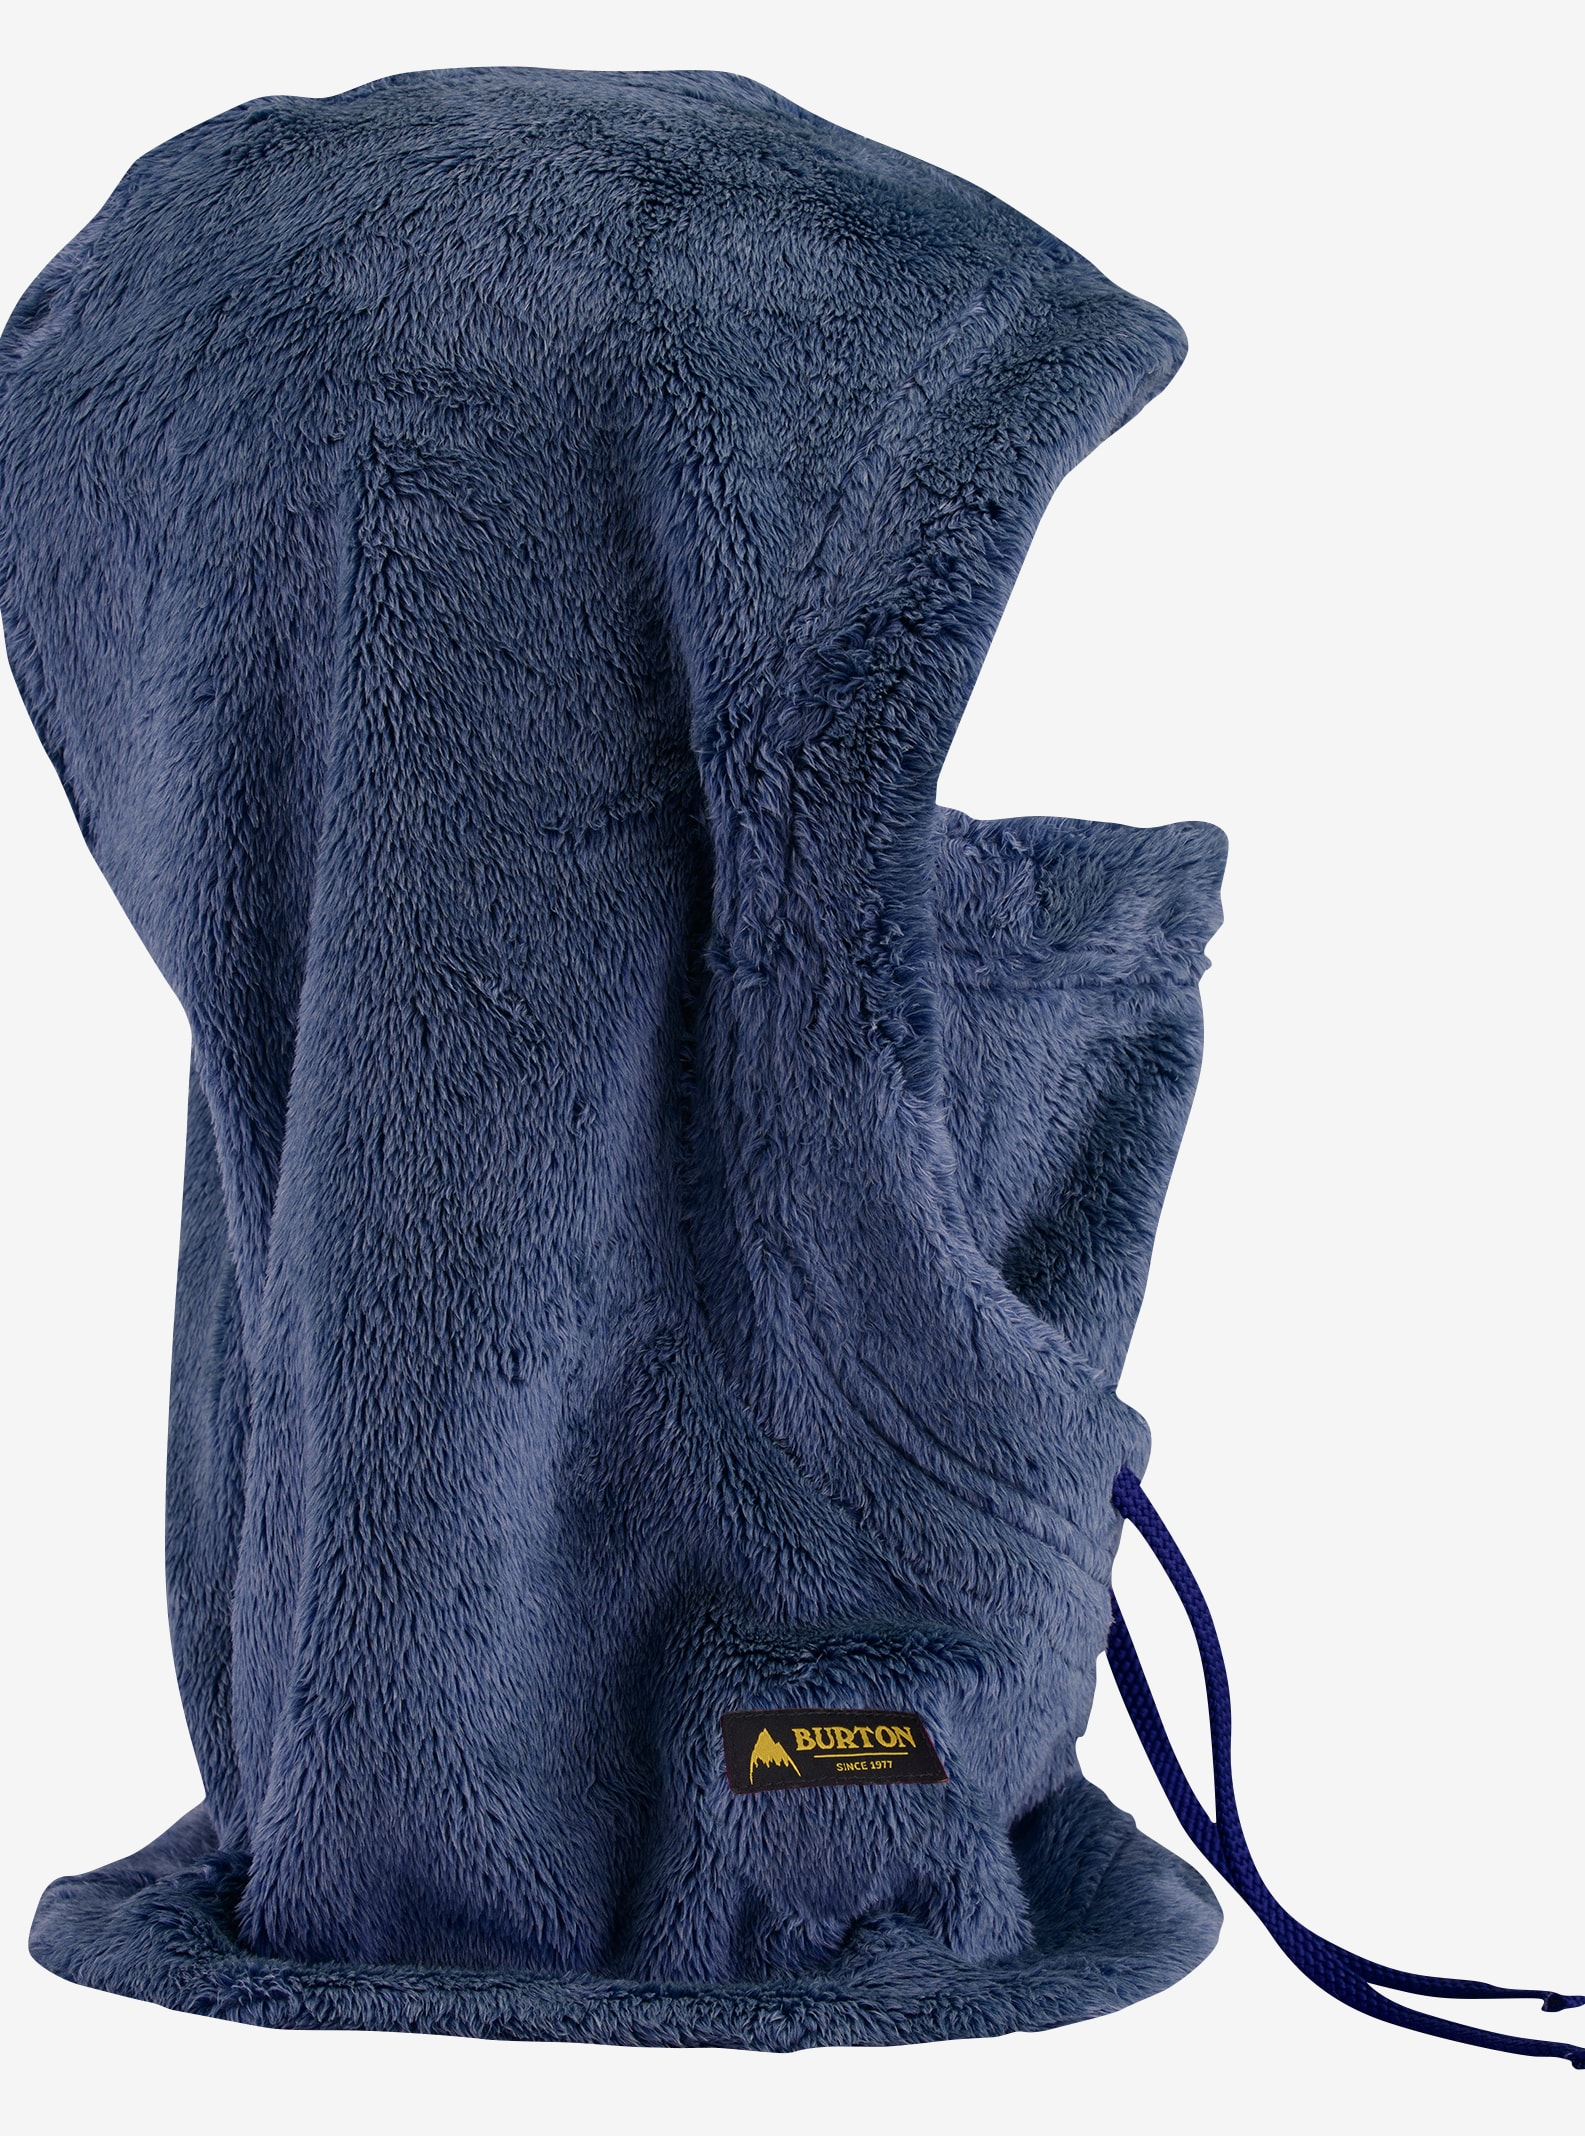 Women's Burton Cora Hood shown in Mood Indigo